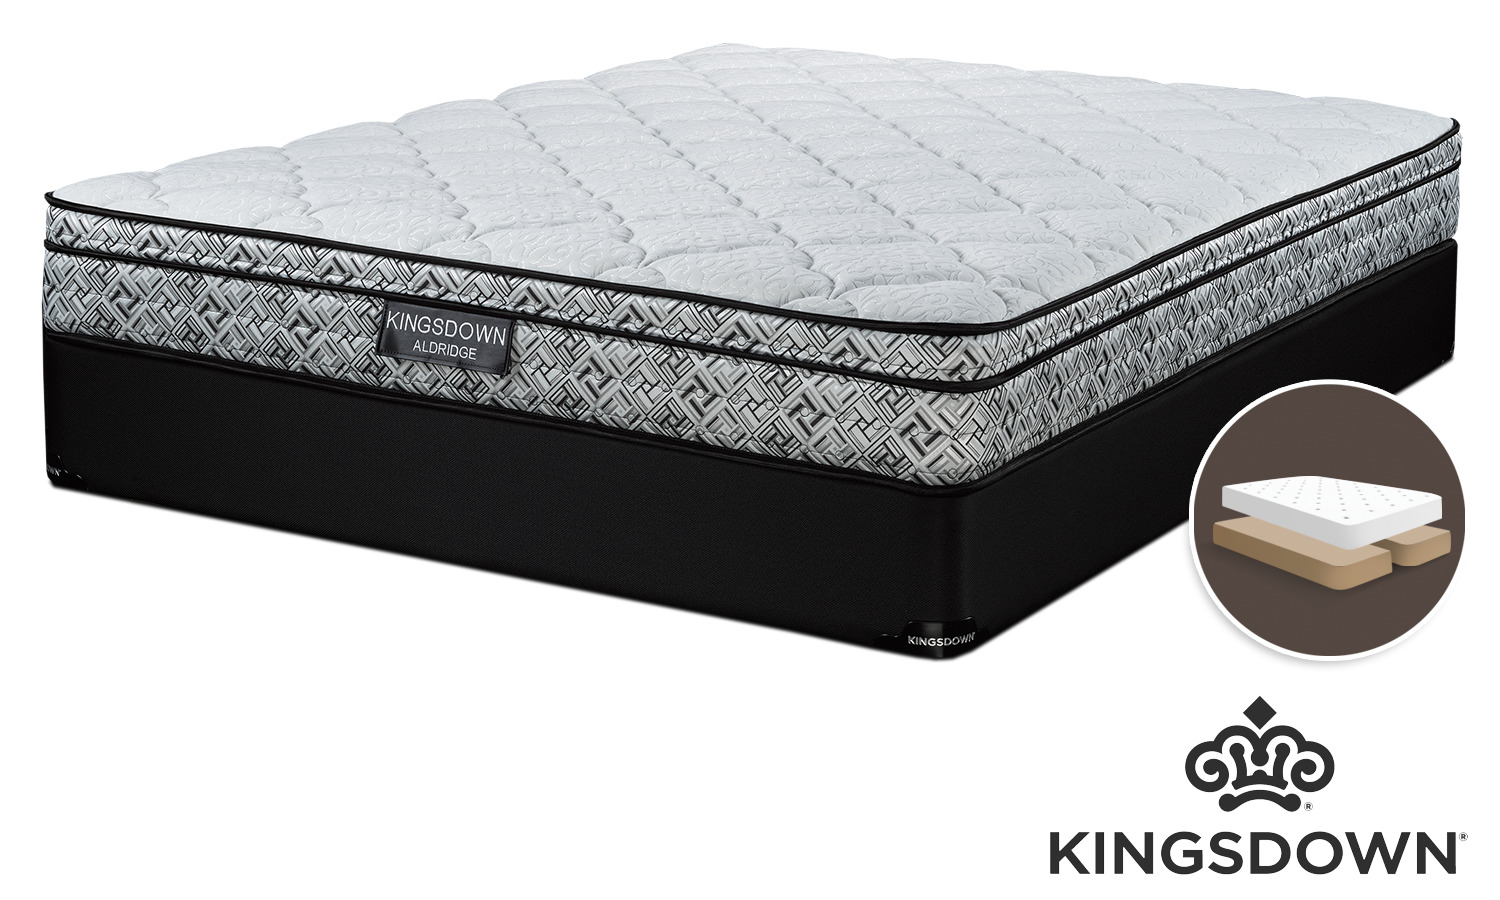 Kingsdown Aldridge Cushion Firm King Mattress and Split Boxspring Set